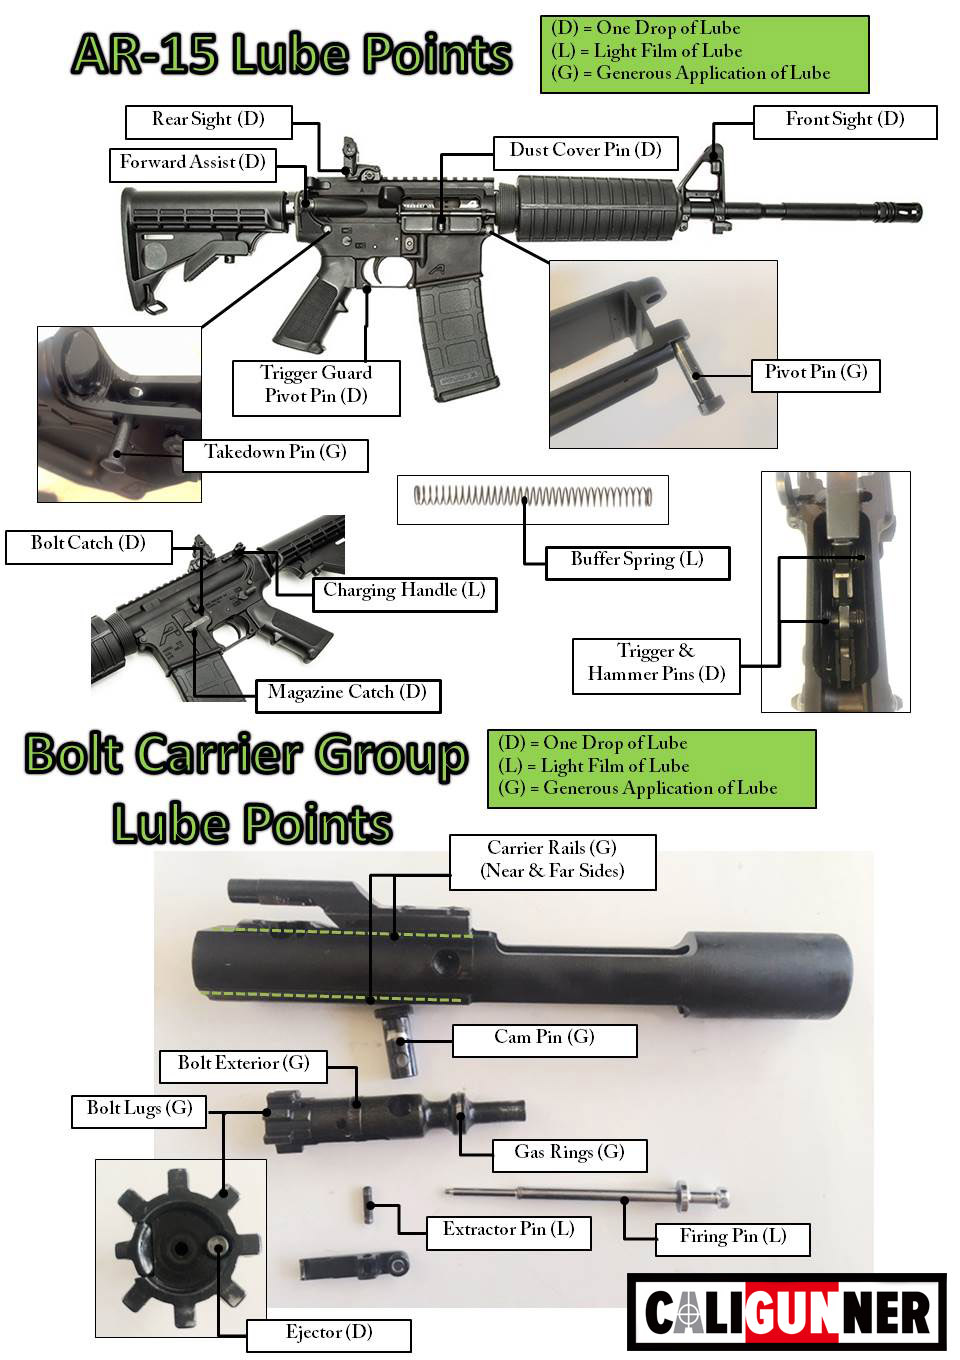 Complete Guide To Clean Lube Your Ar 15 With Pictures Caligunner Com